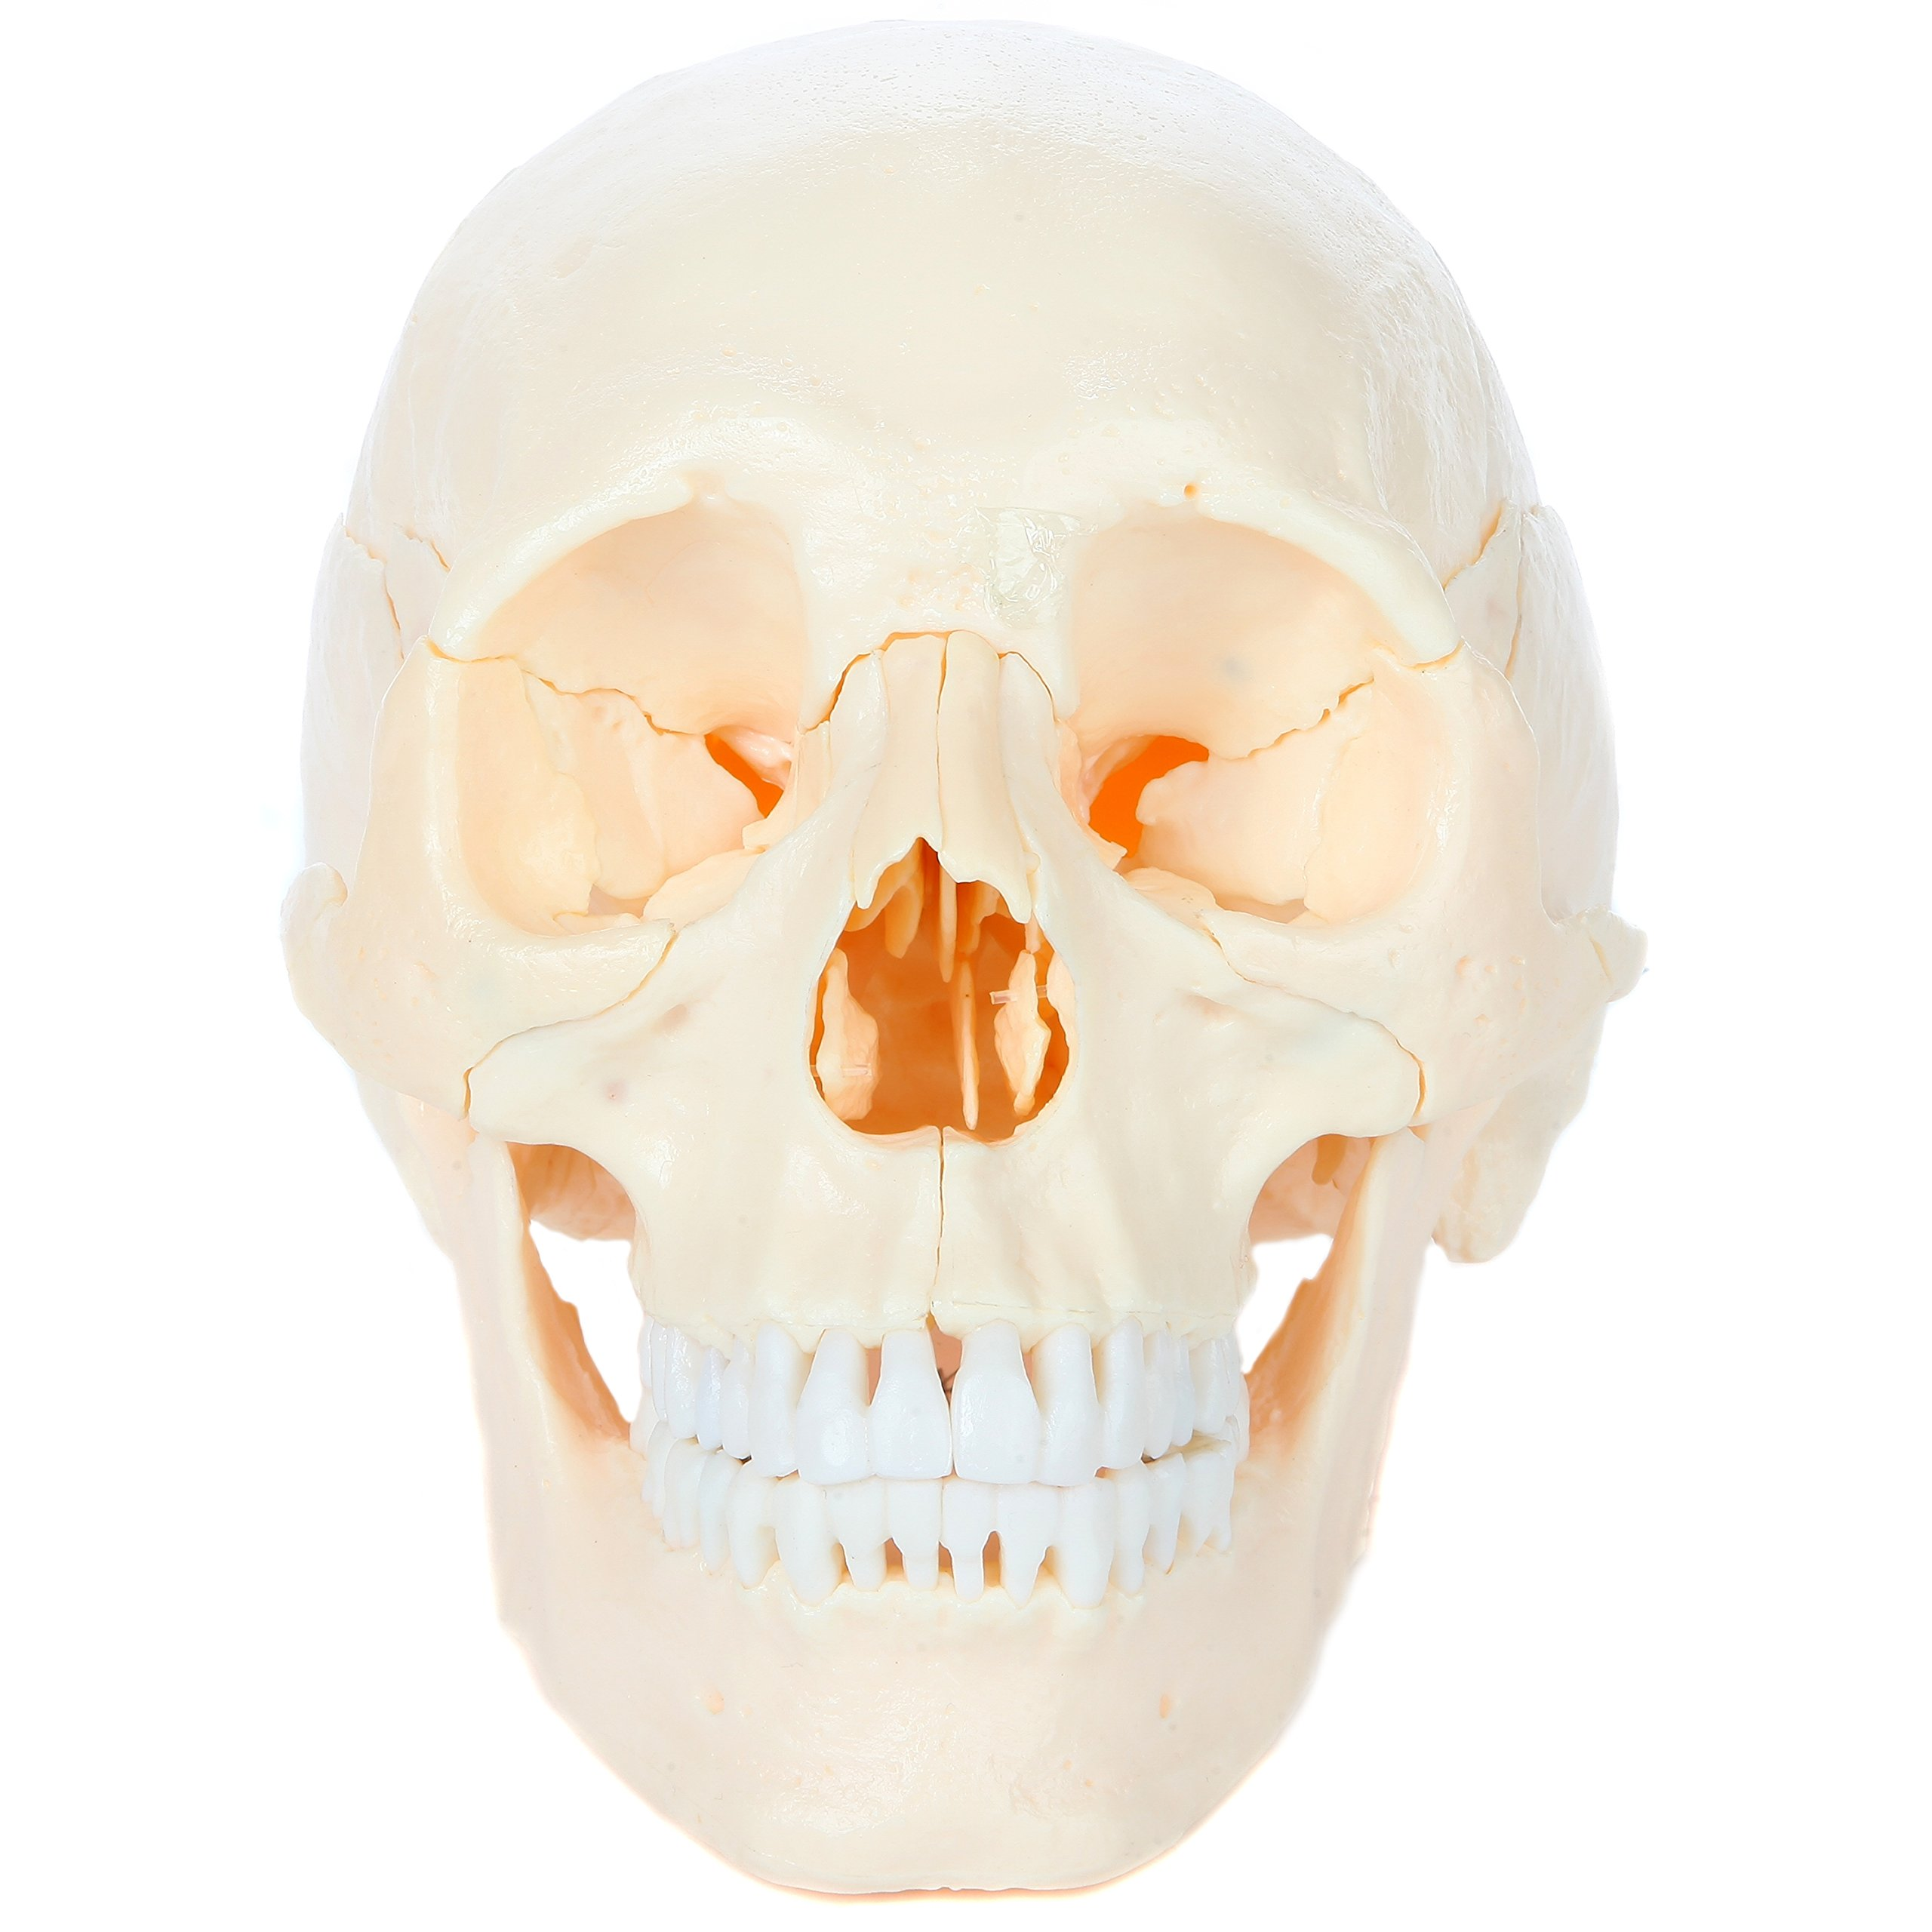 Axis Scientific 22-Part Human Skull Model   Molded from a Real Human Skull this Life Size Plastic Skull Disassembles into 22 Bones   Includes Detailed Product Manual   3 Year Warranty